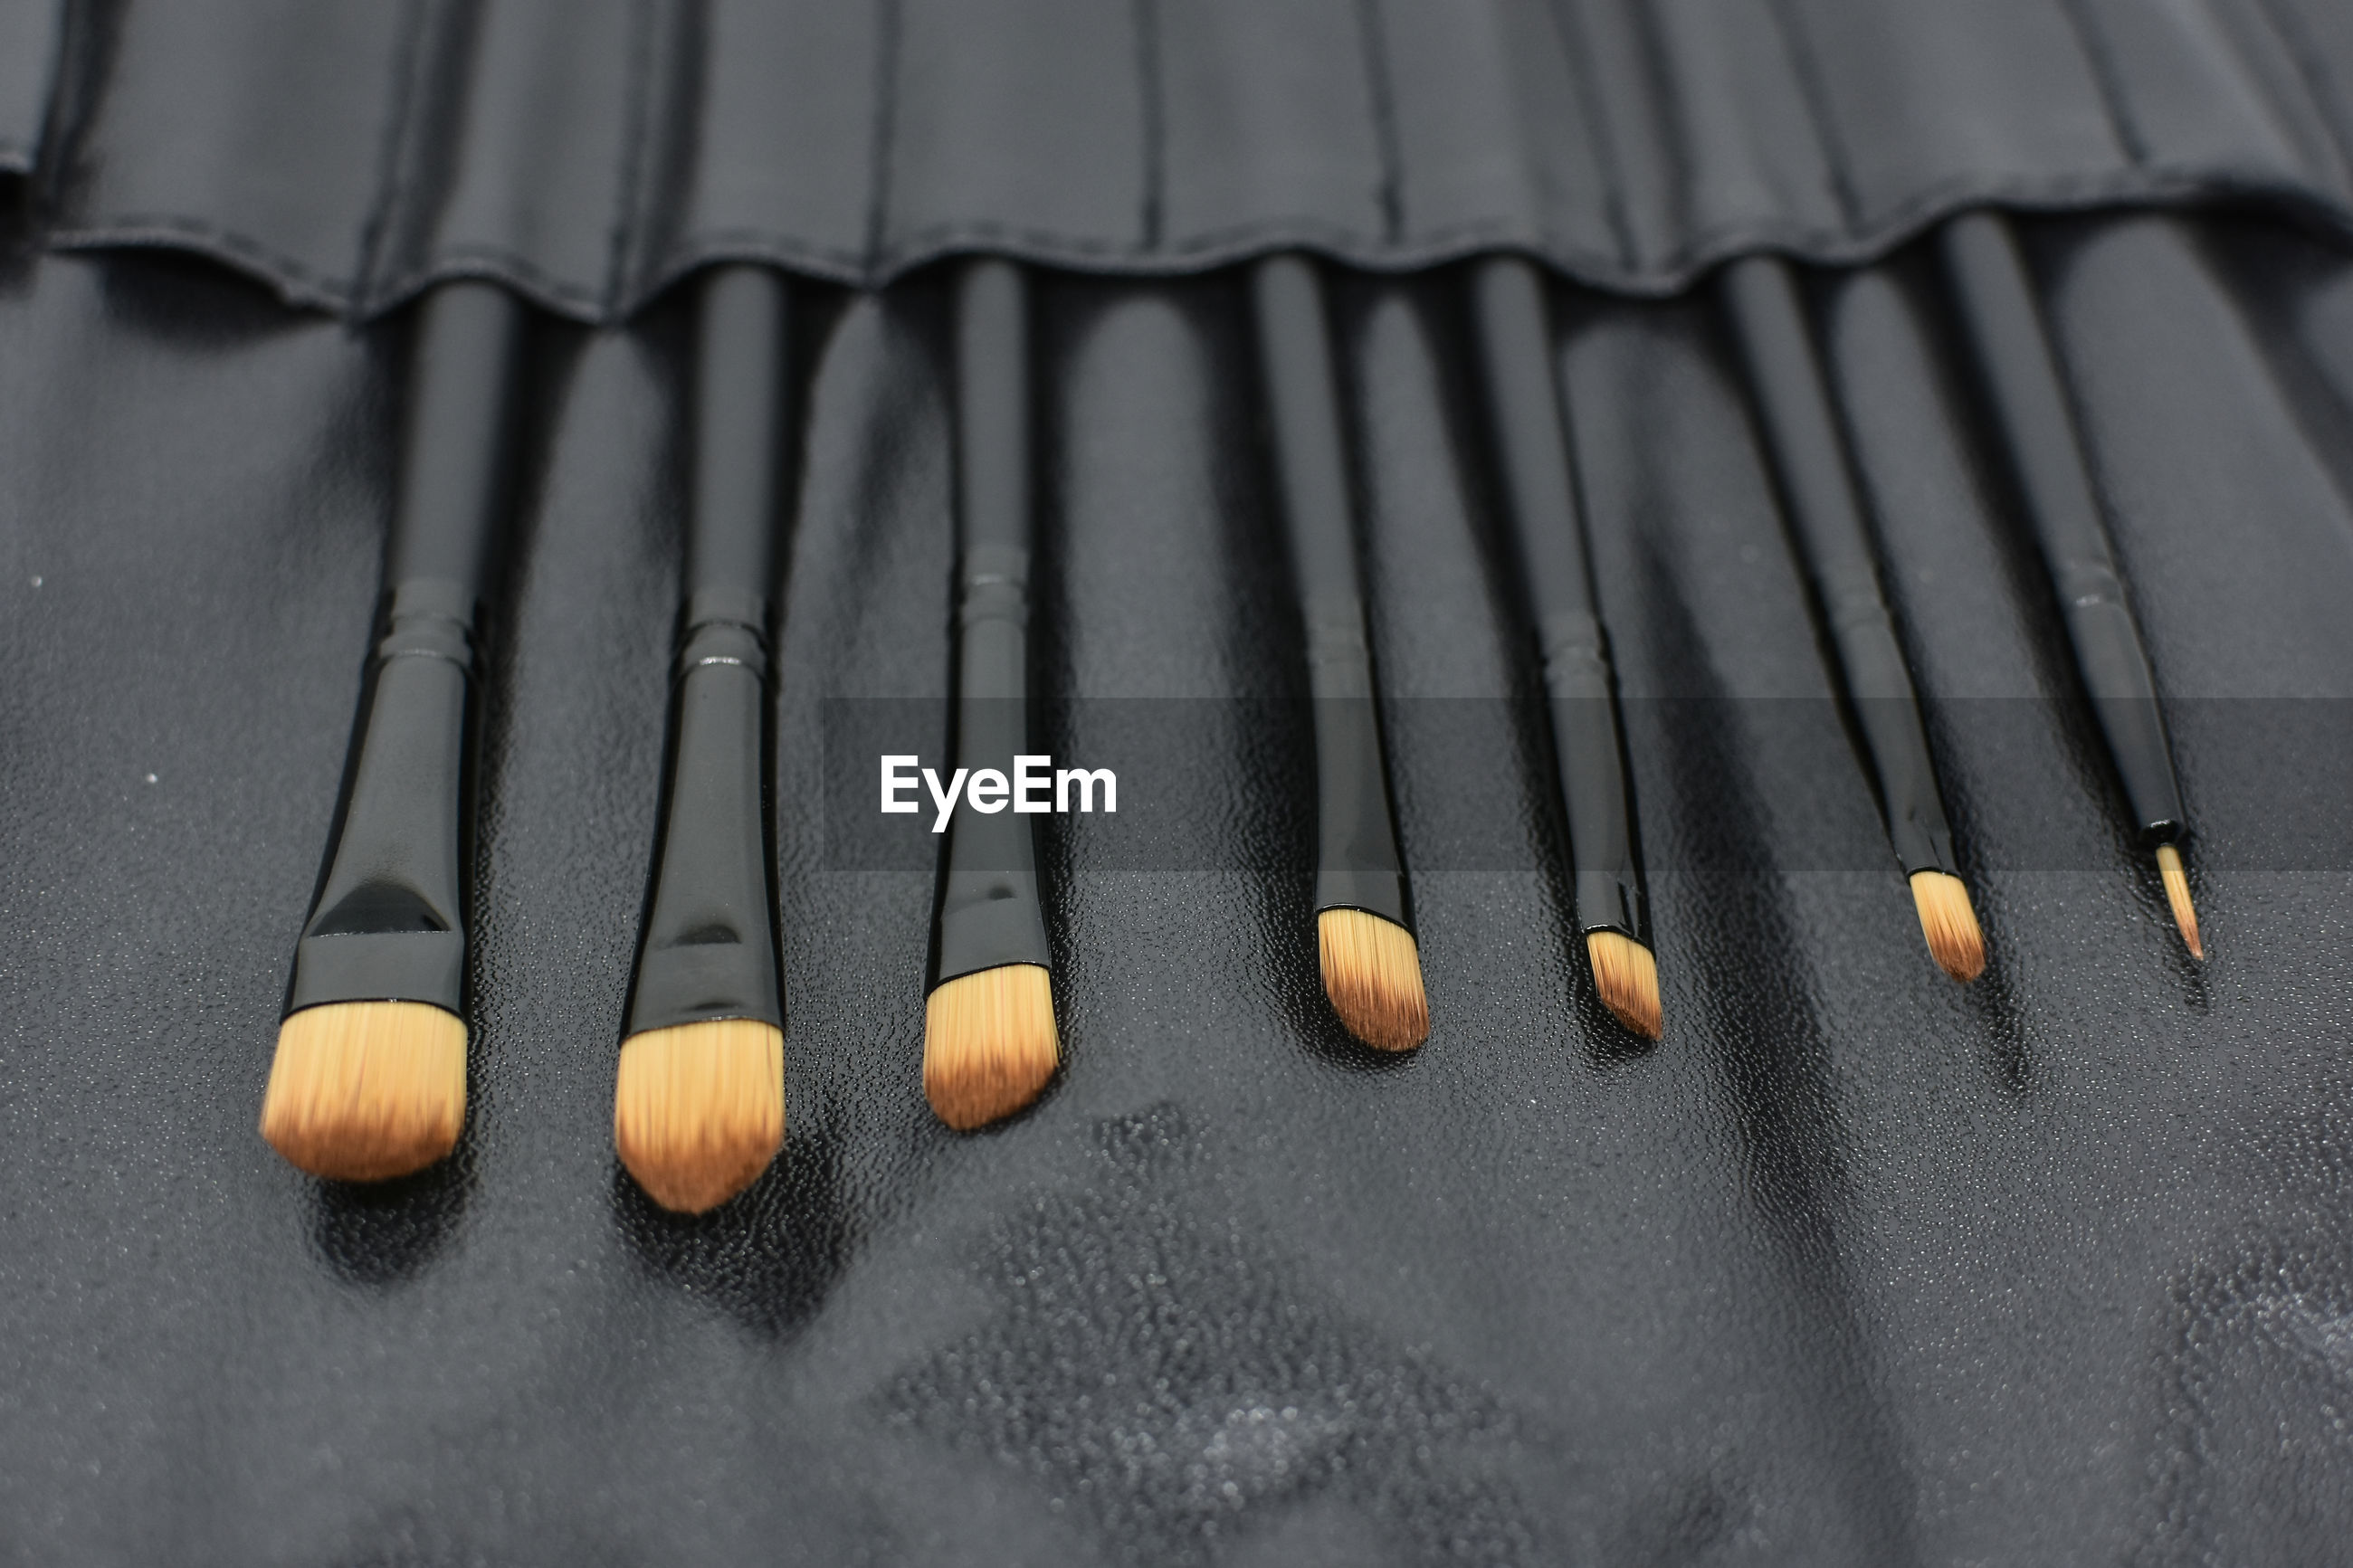 High angle view of make-up brushes